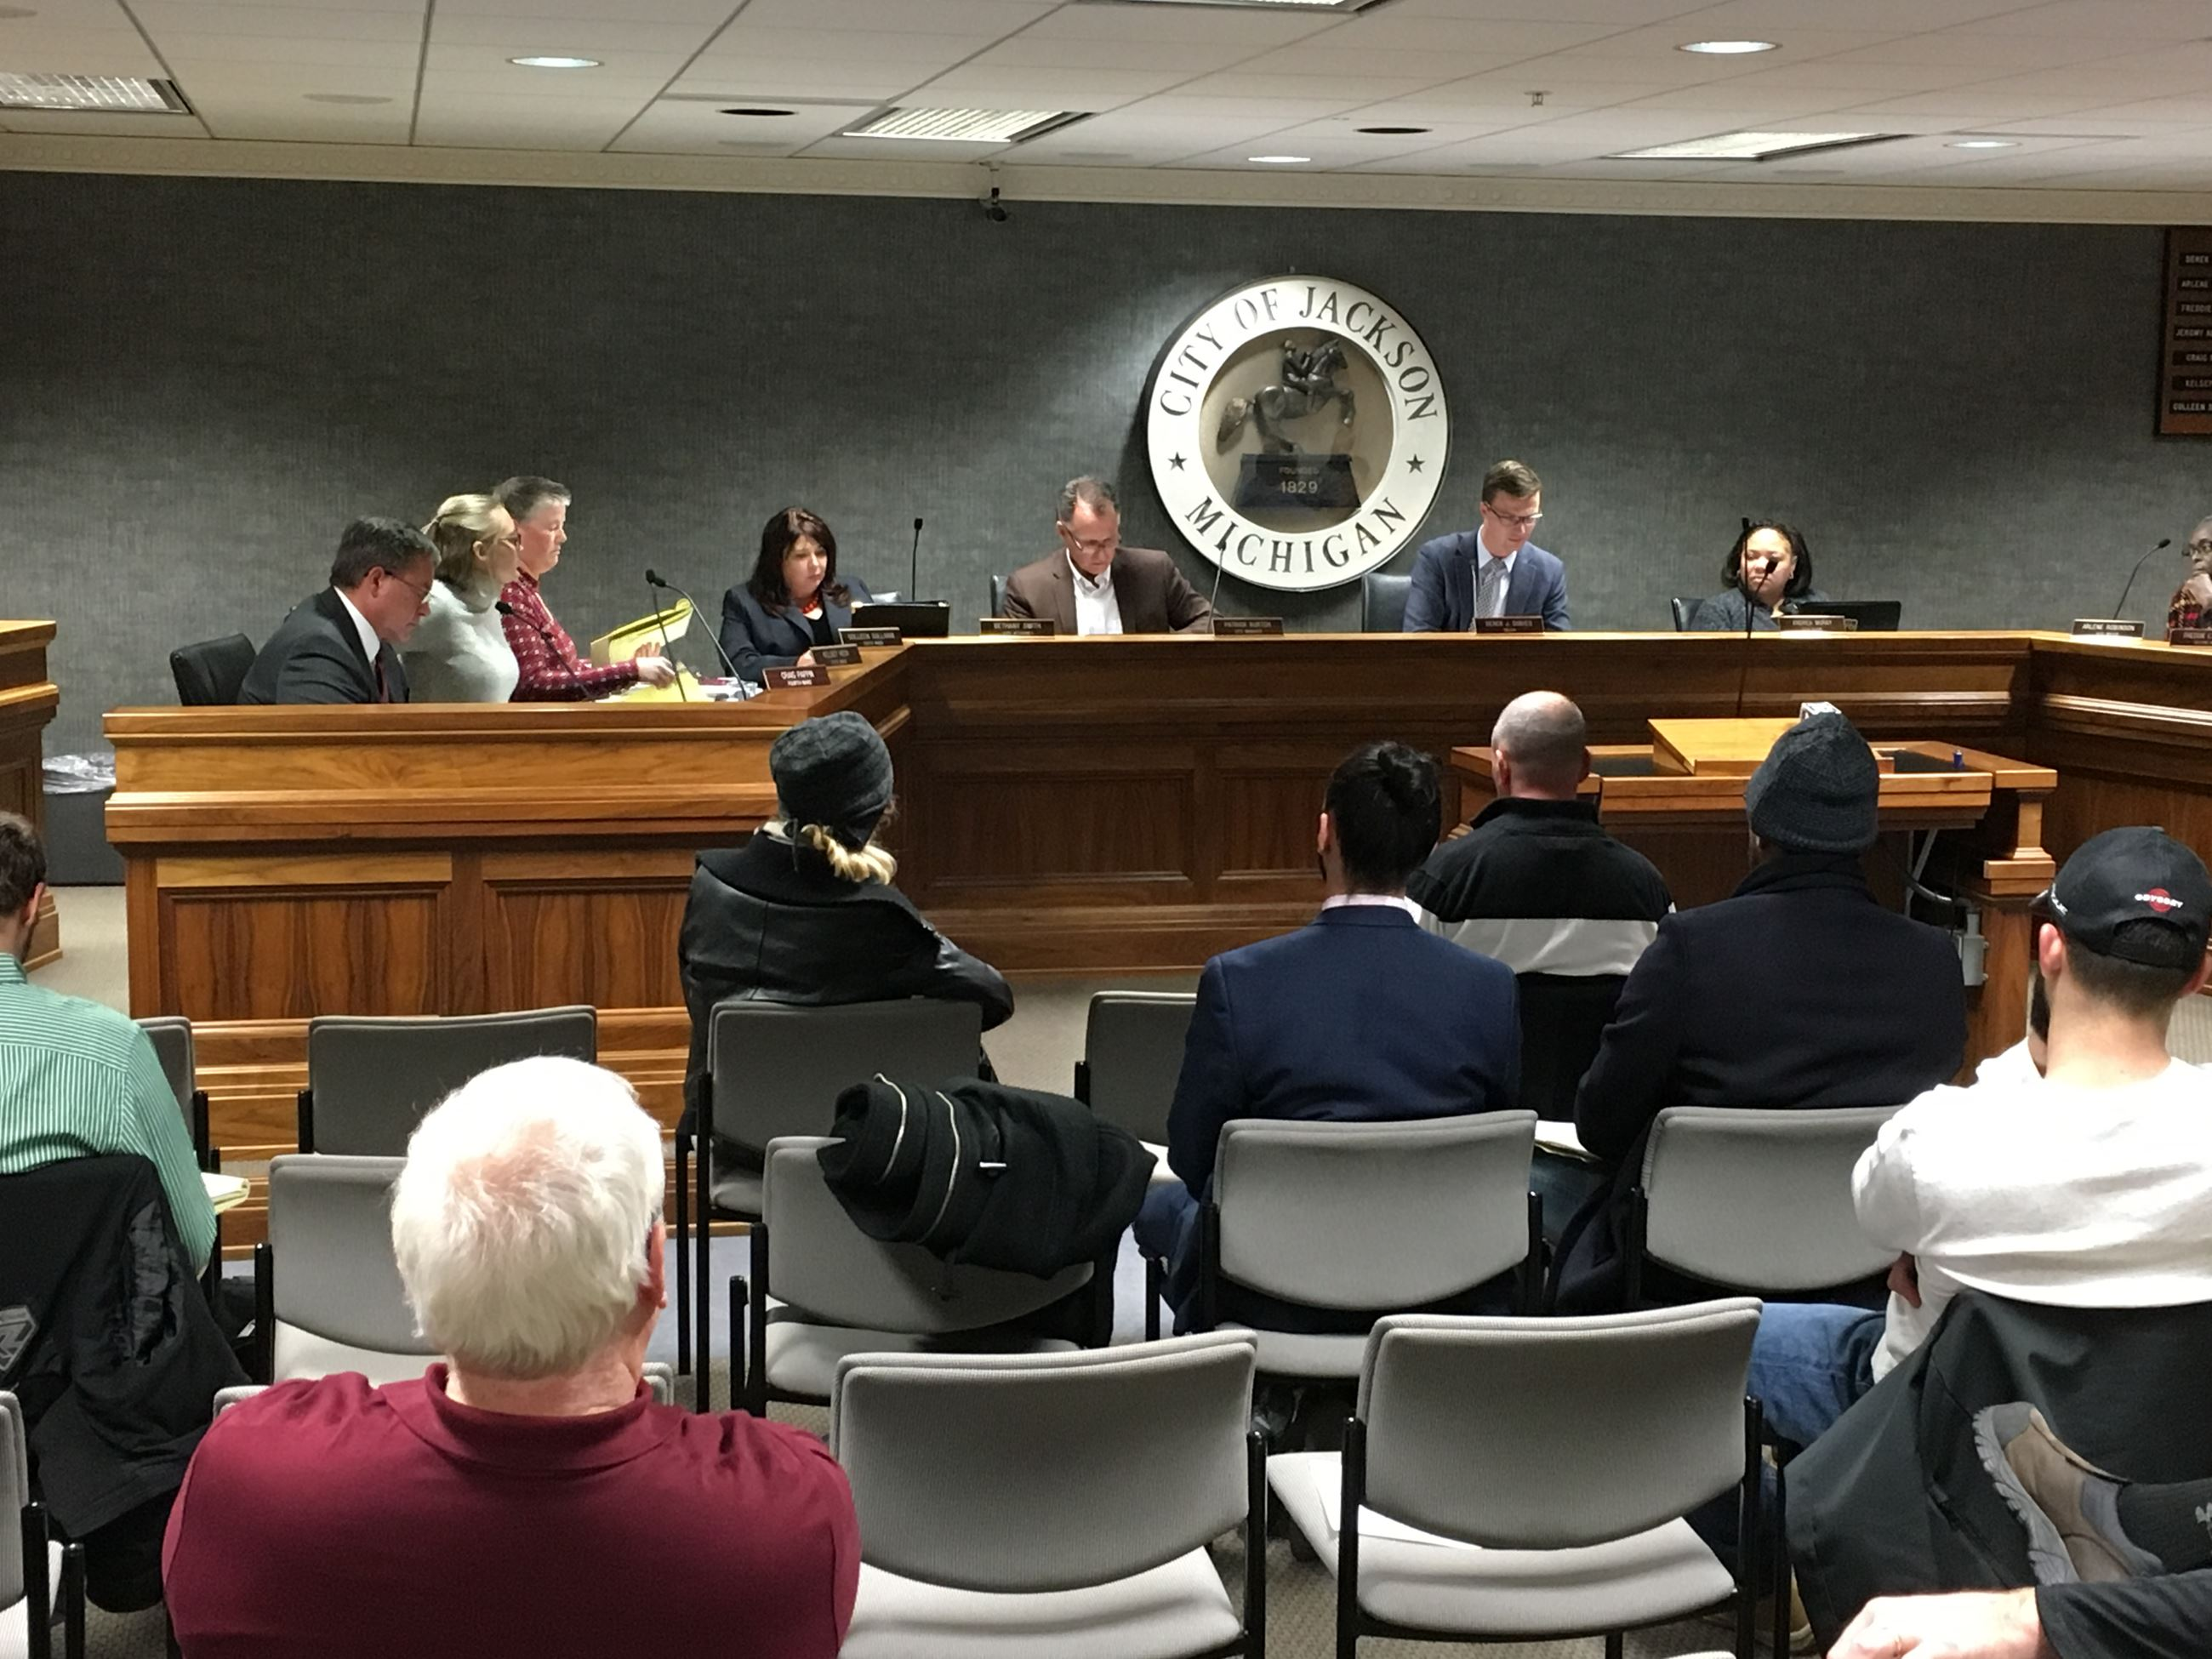 Council meeting 11-27-18